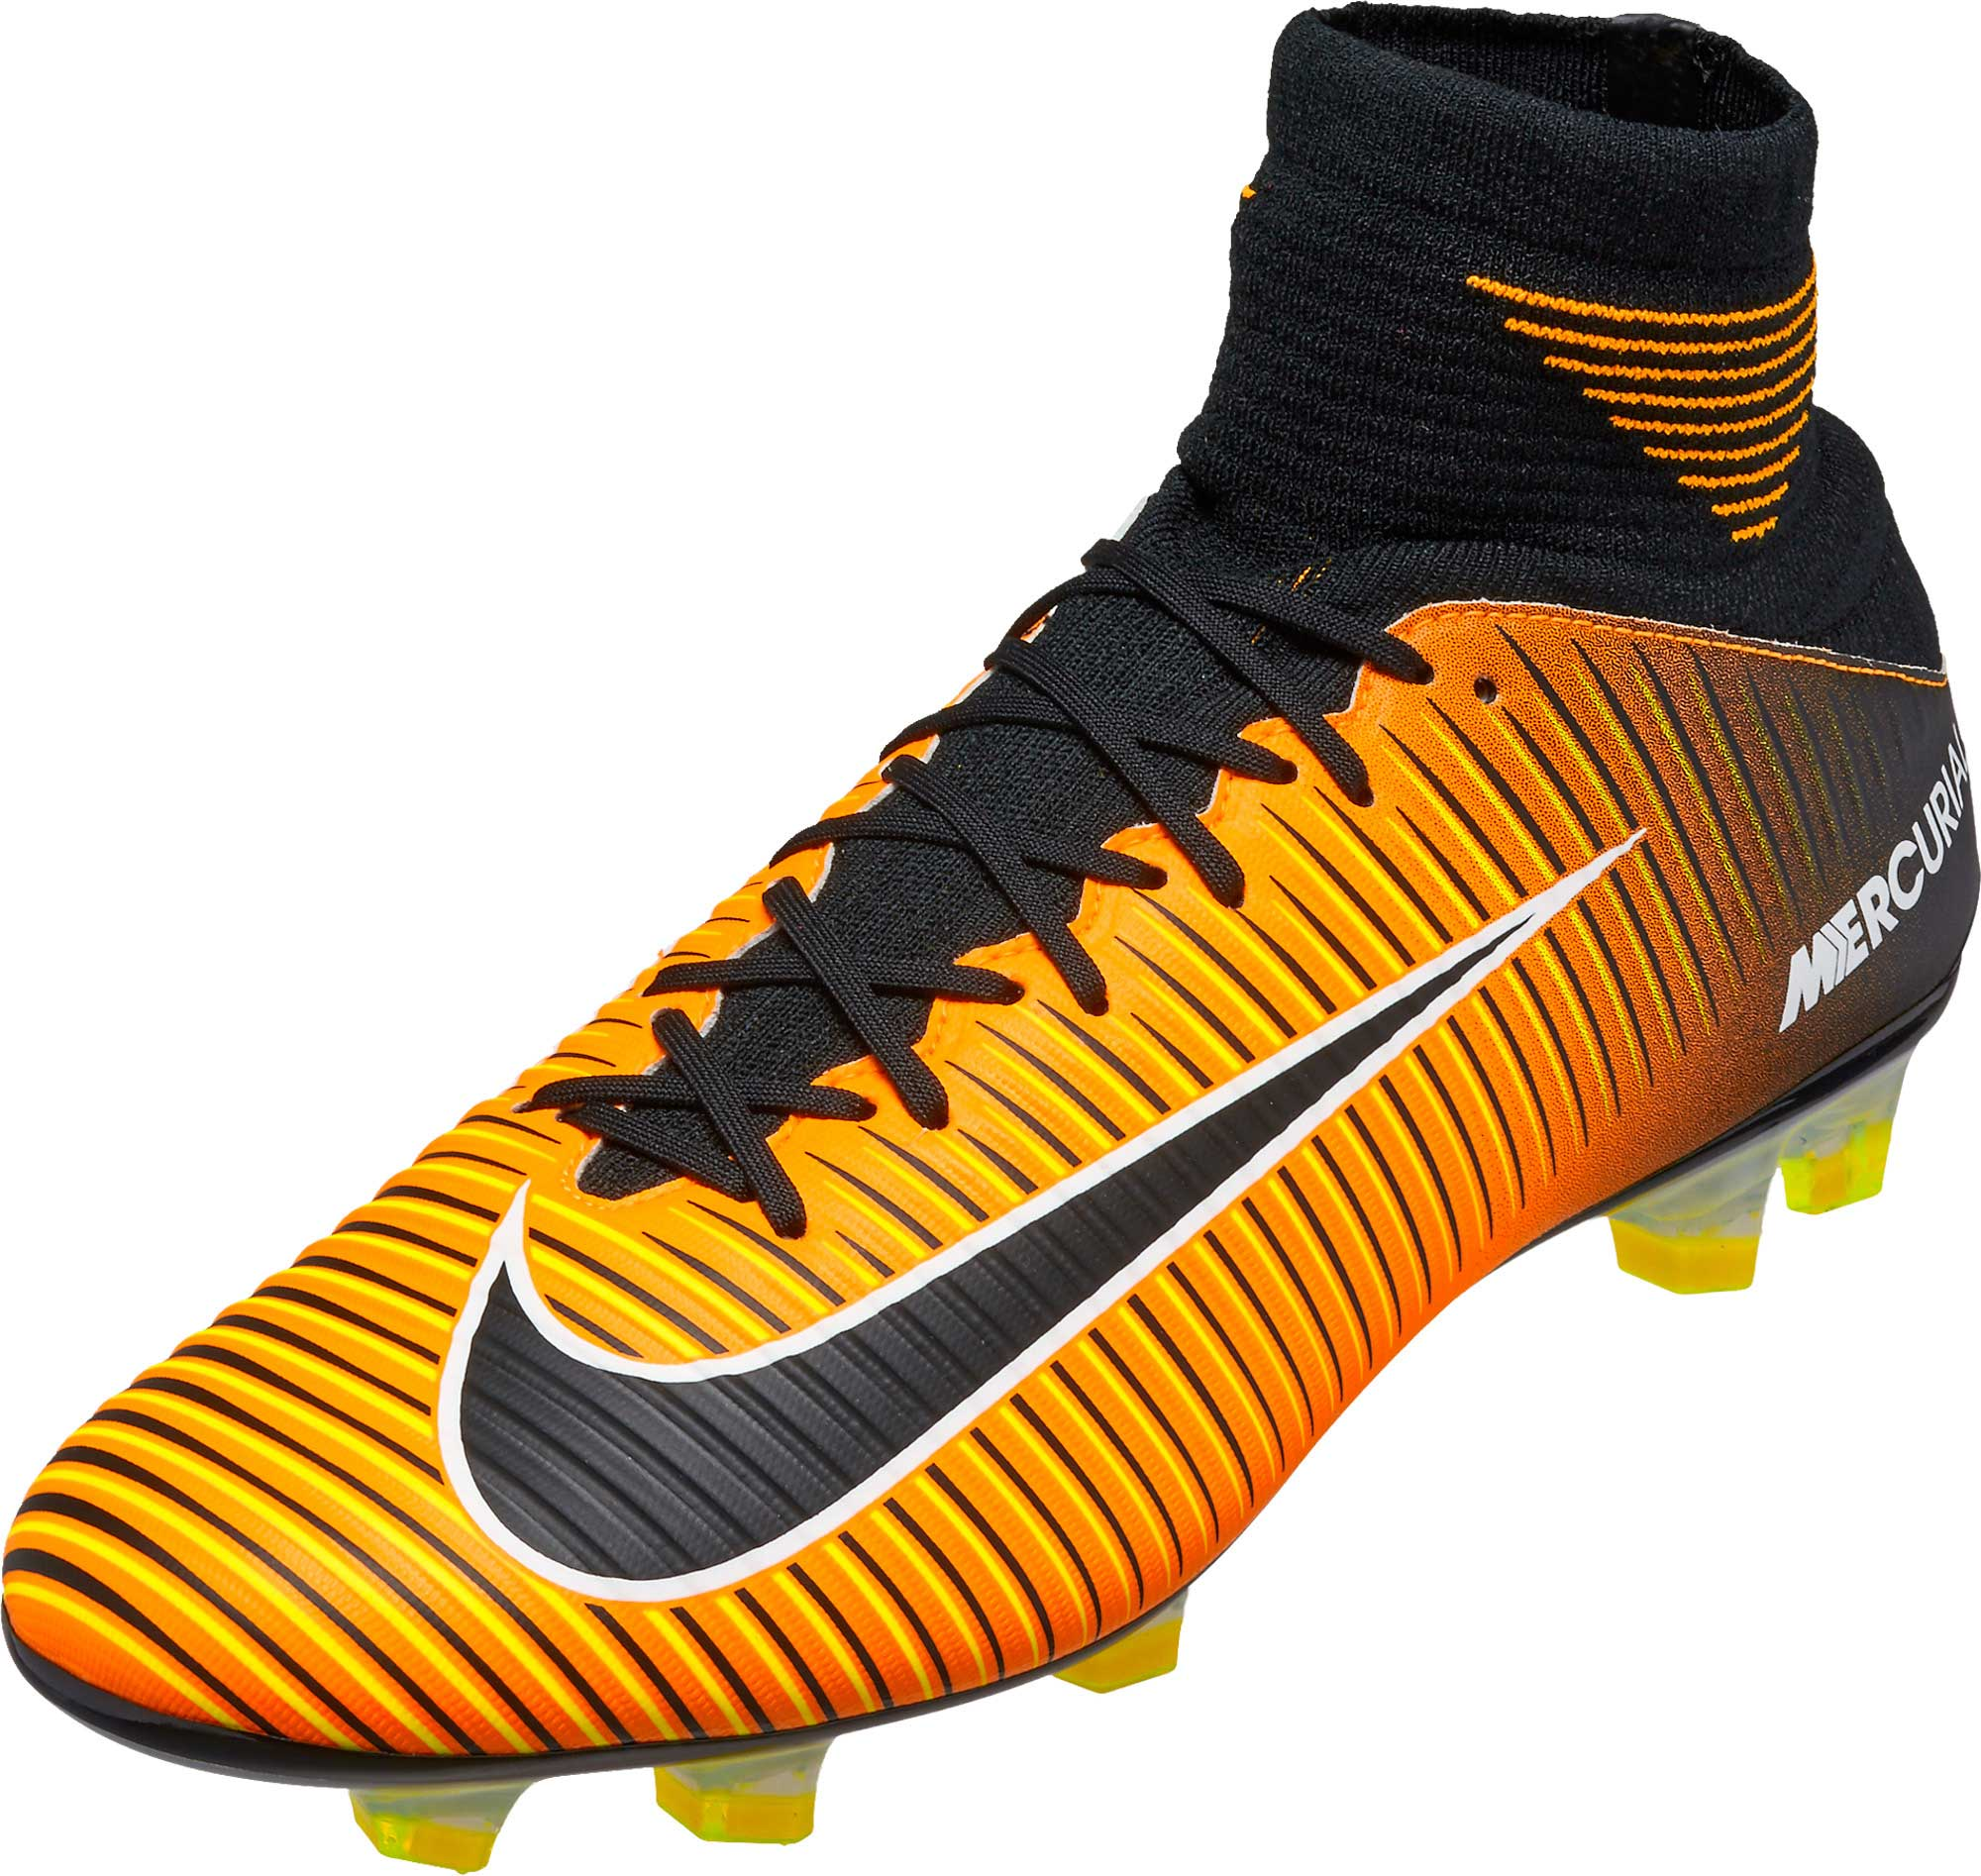 new arrival 4ce18 d9aa7 ... coupon code for nike mercurial veloce iii df fg laser orange black  43ca4 25fd3